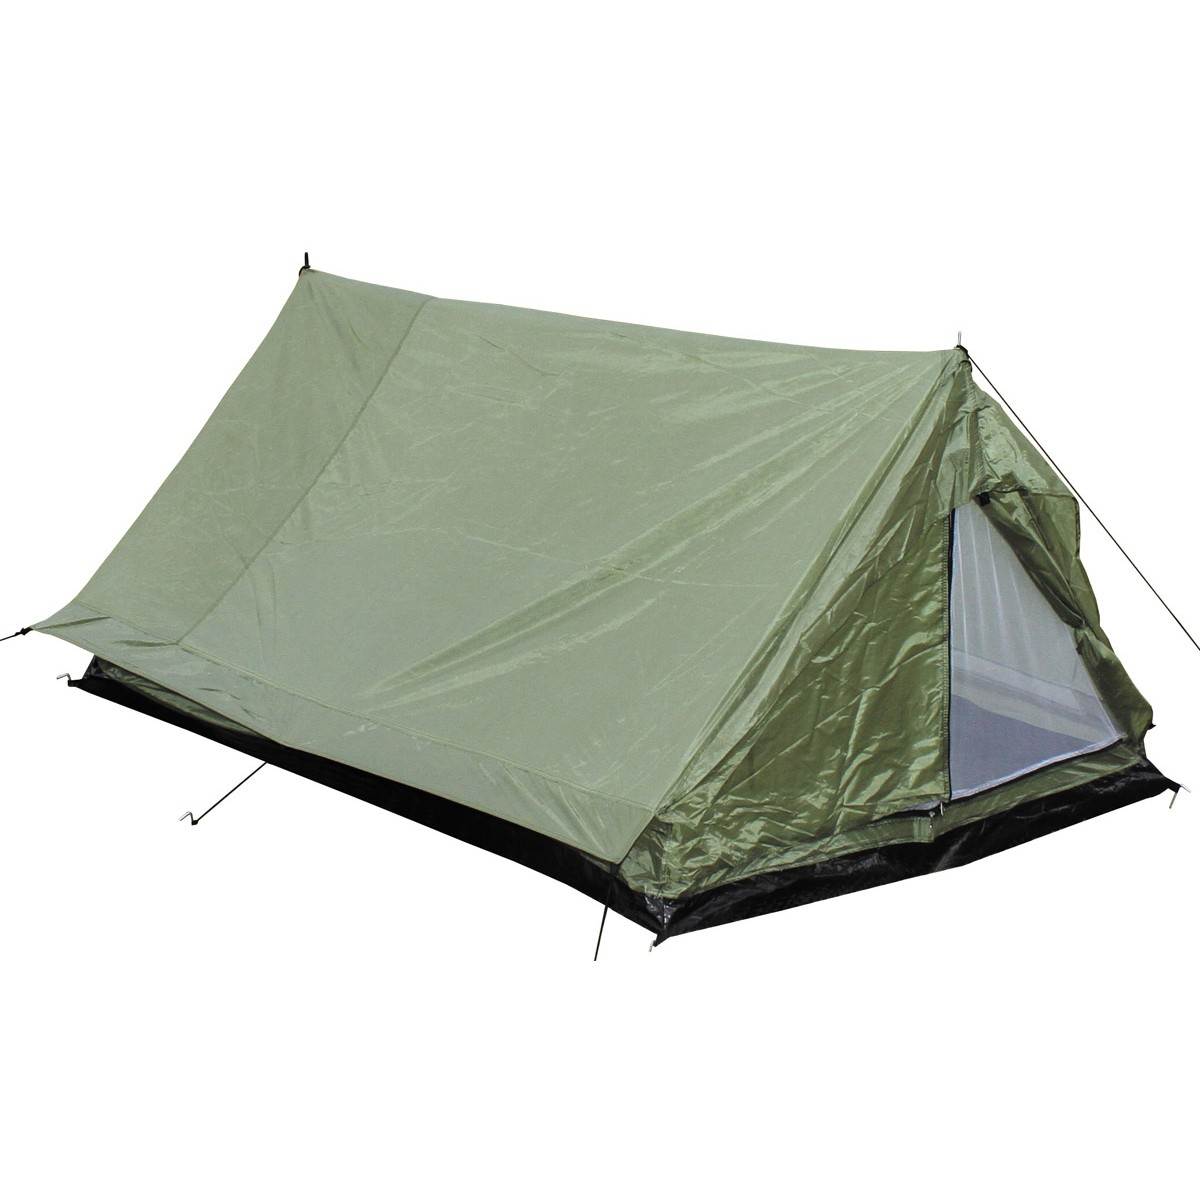 Standard Two Man Military Army Tactical Double Shelter - OD Green